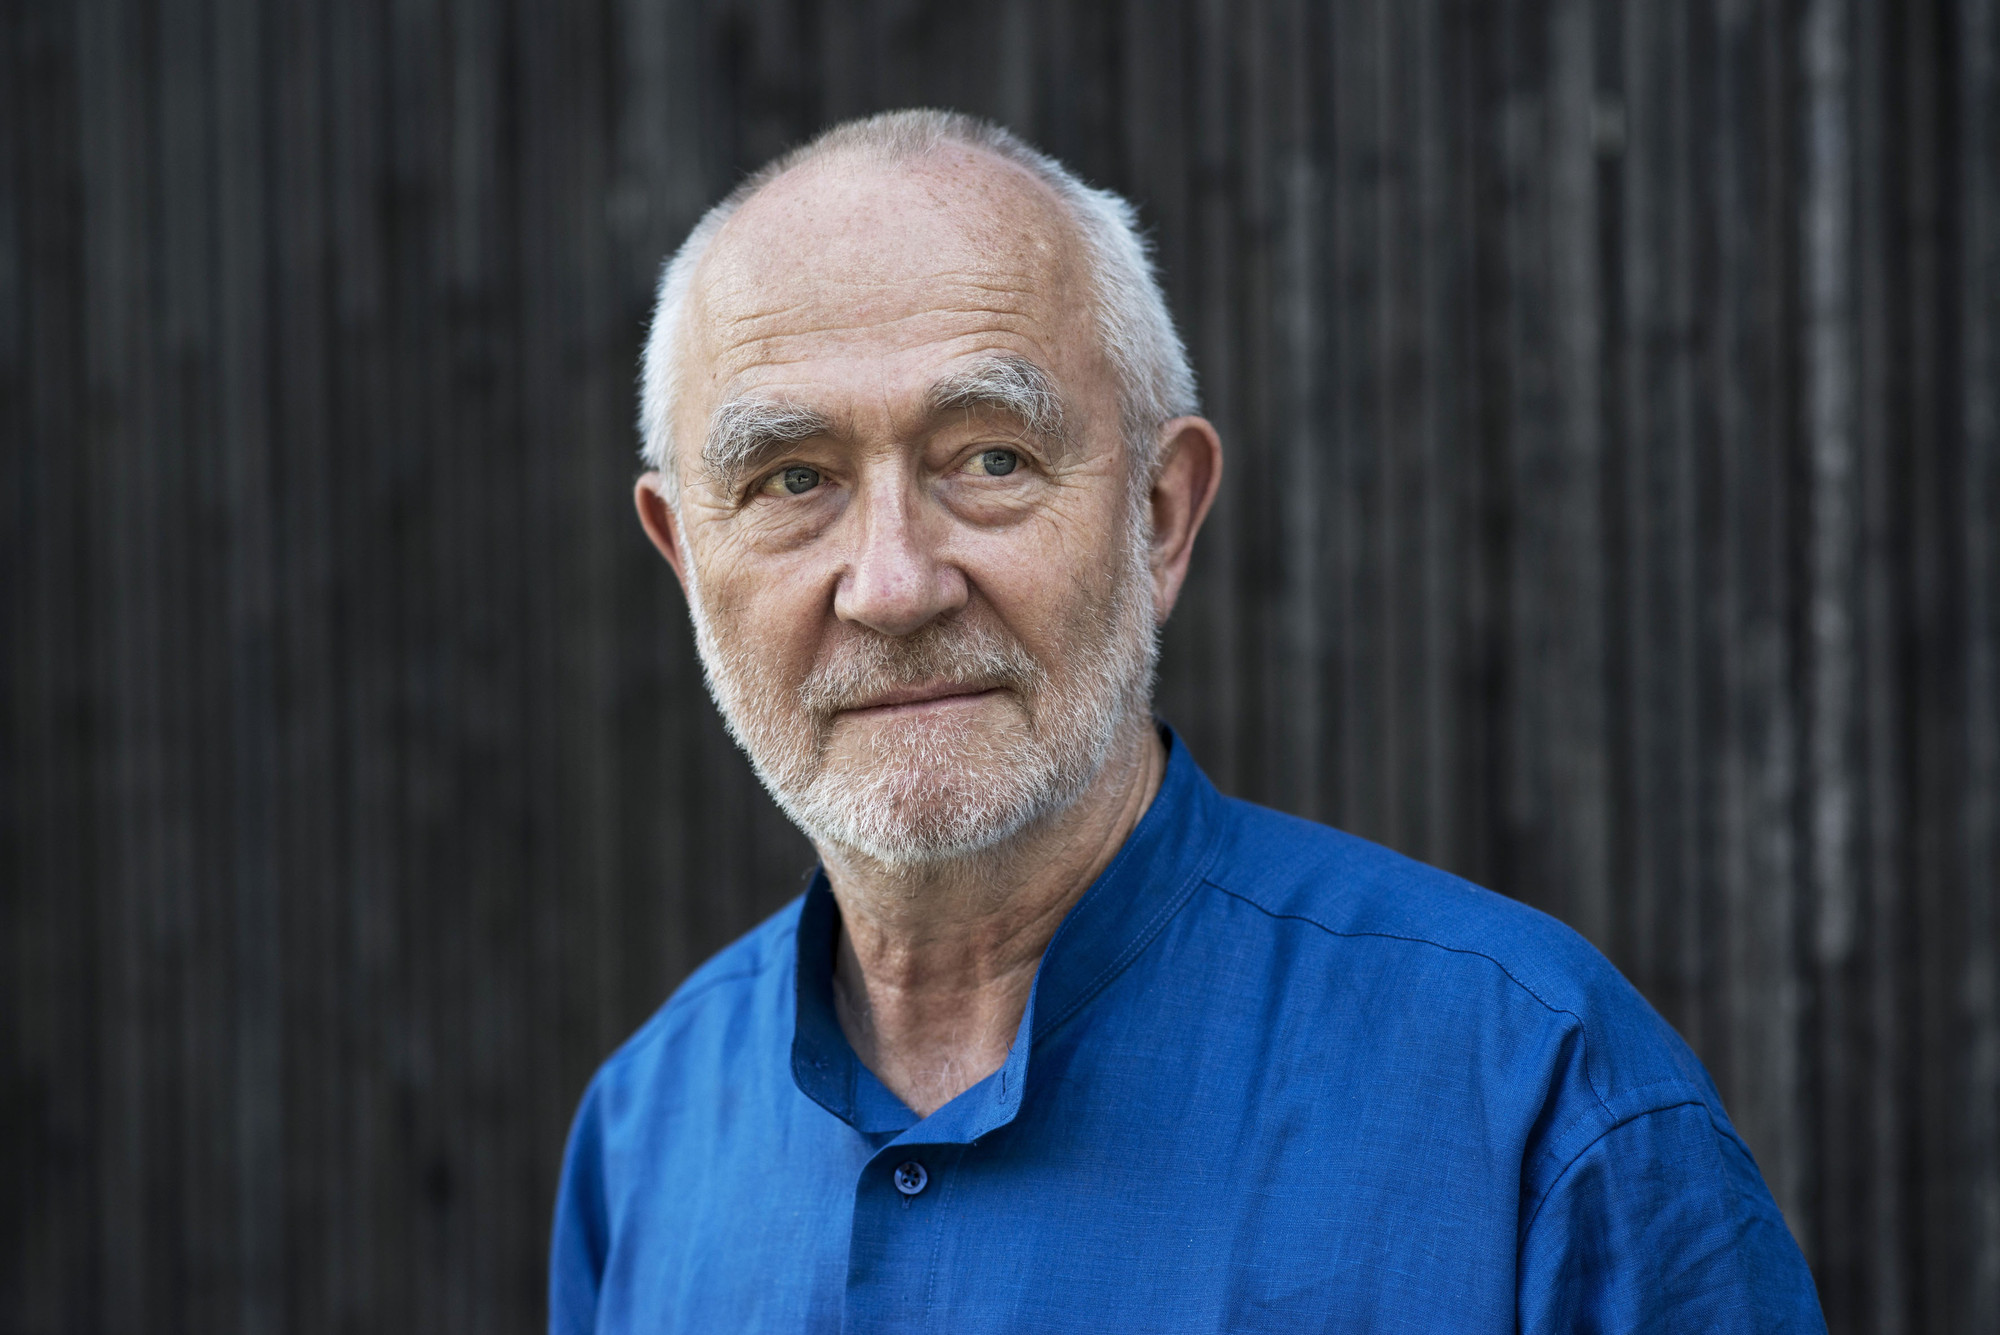 Peter Zumthor to Serve as Rolex Arts Initiative Architecture Mentor , Peter Zumthor, Architecture mentor. Image © Keystone / Christian Beutler